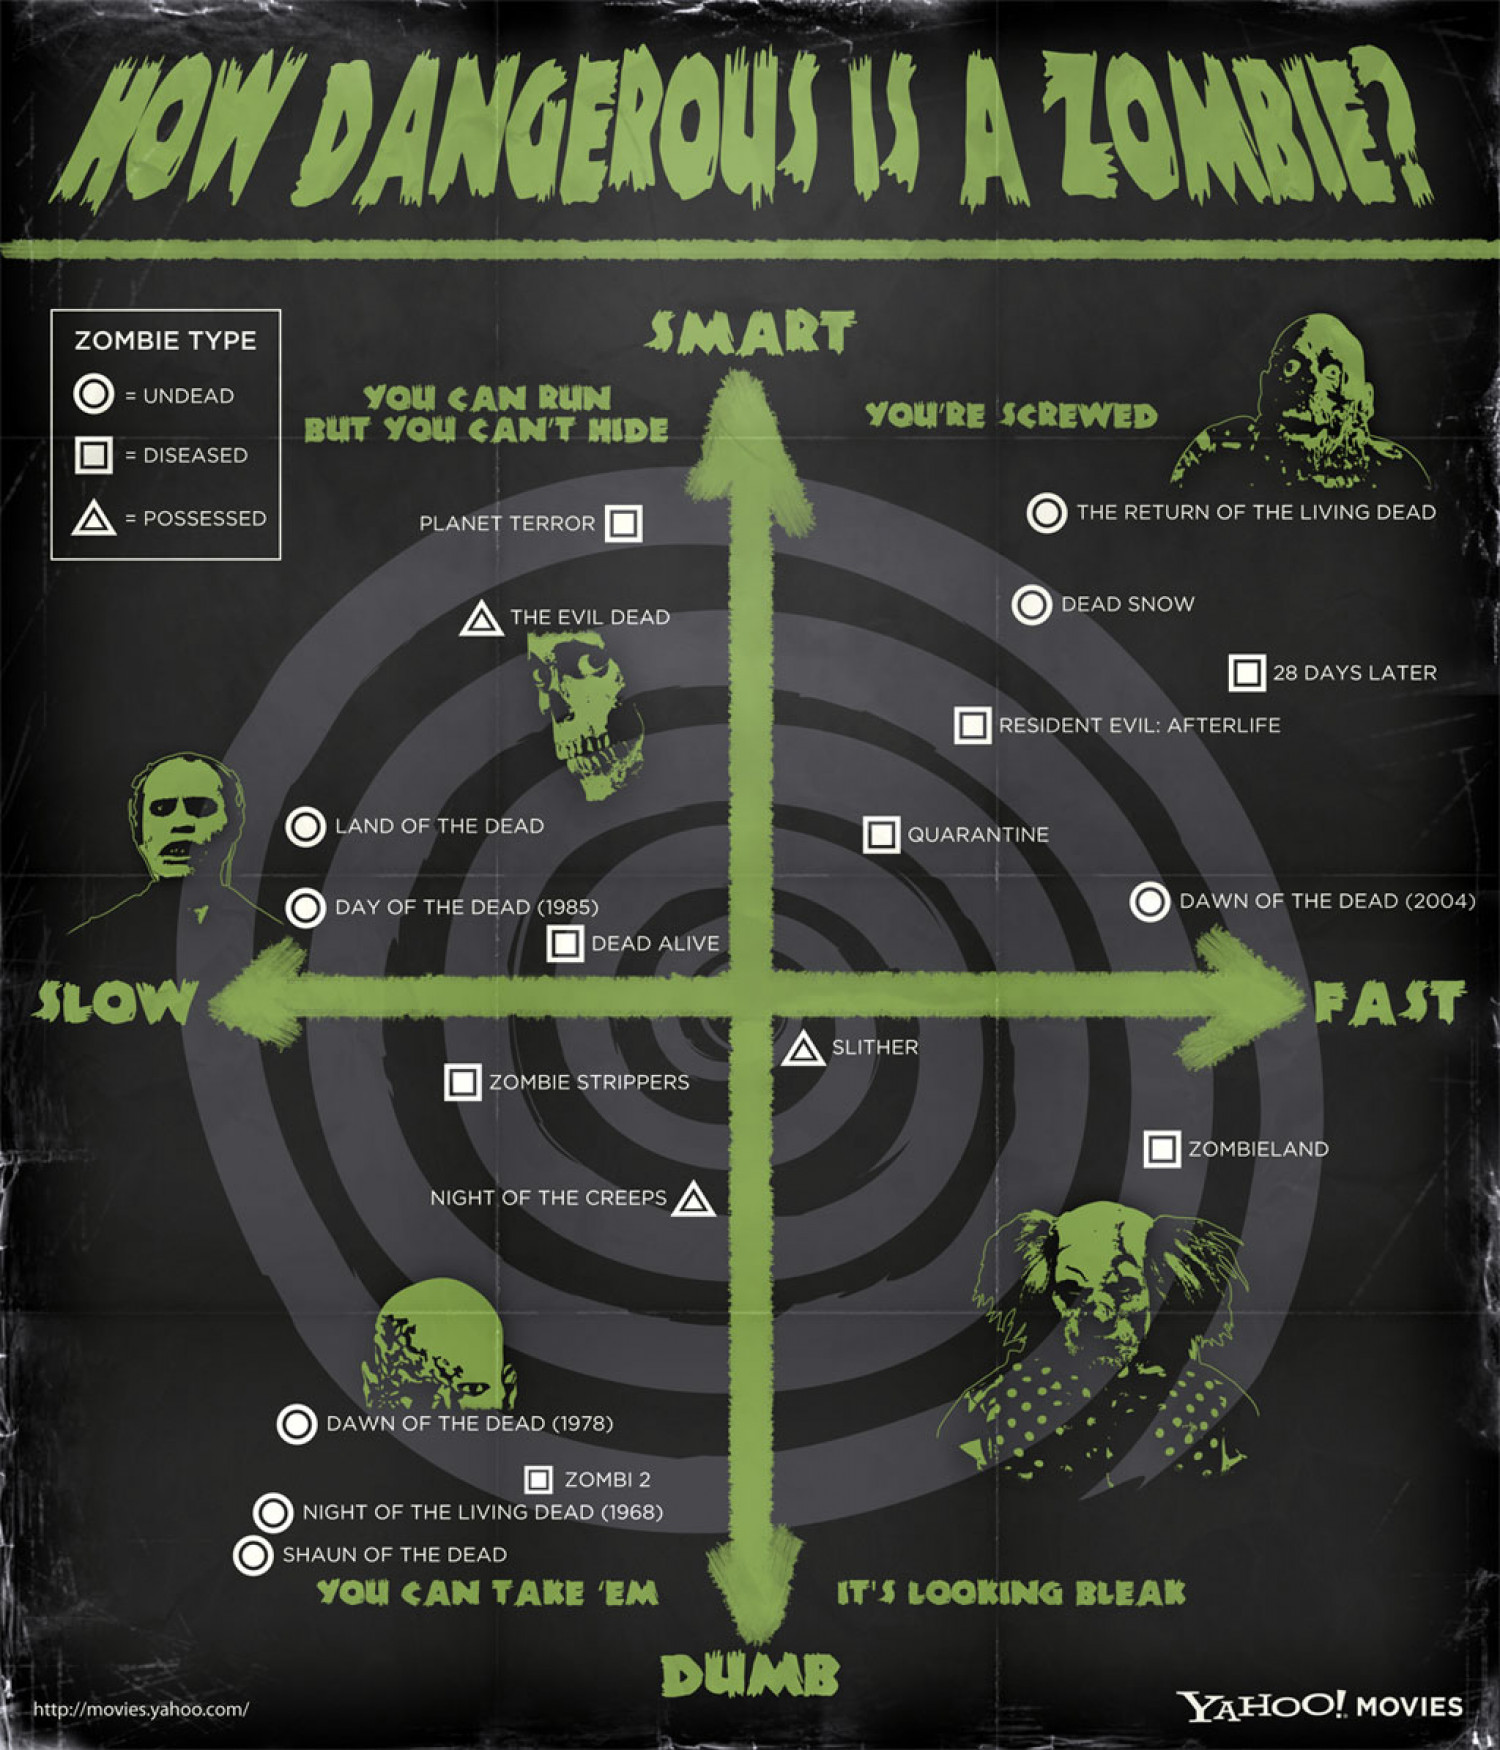 How Dangerous is a Zombie? Infographic